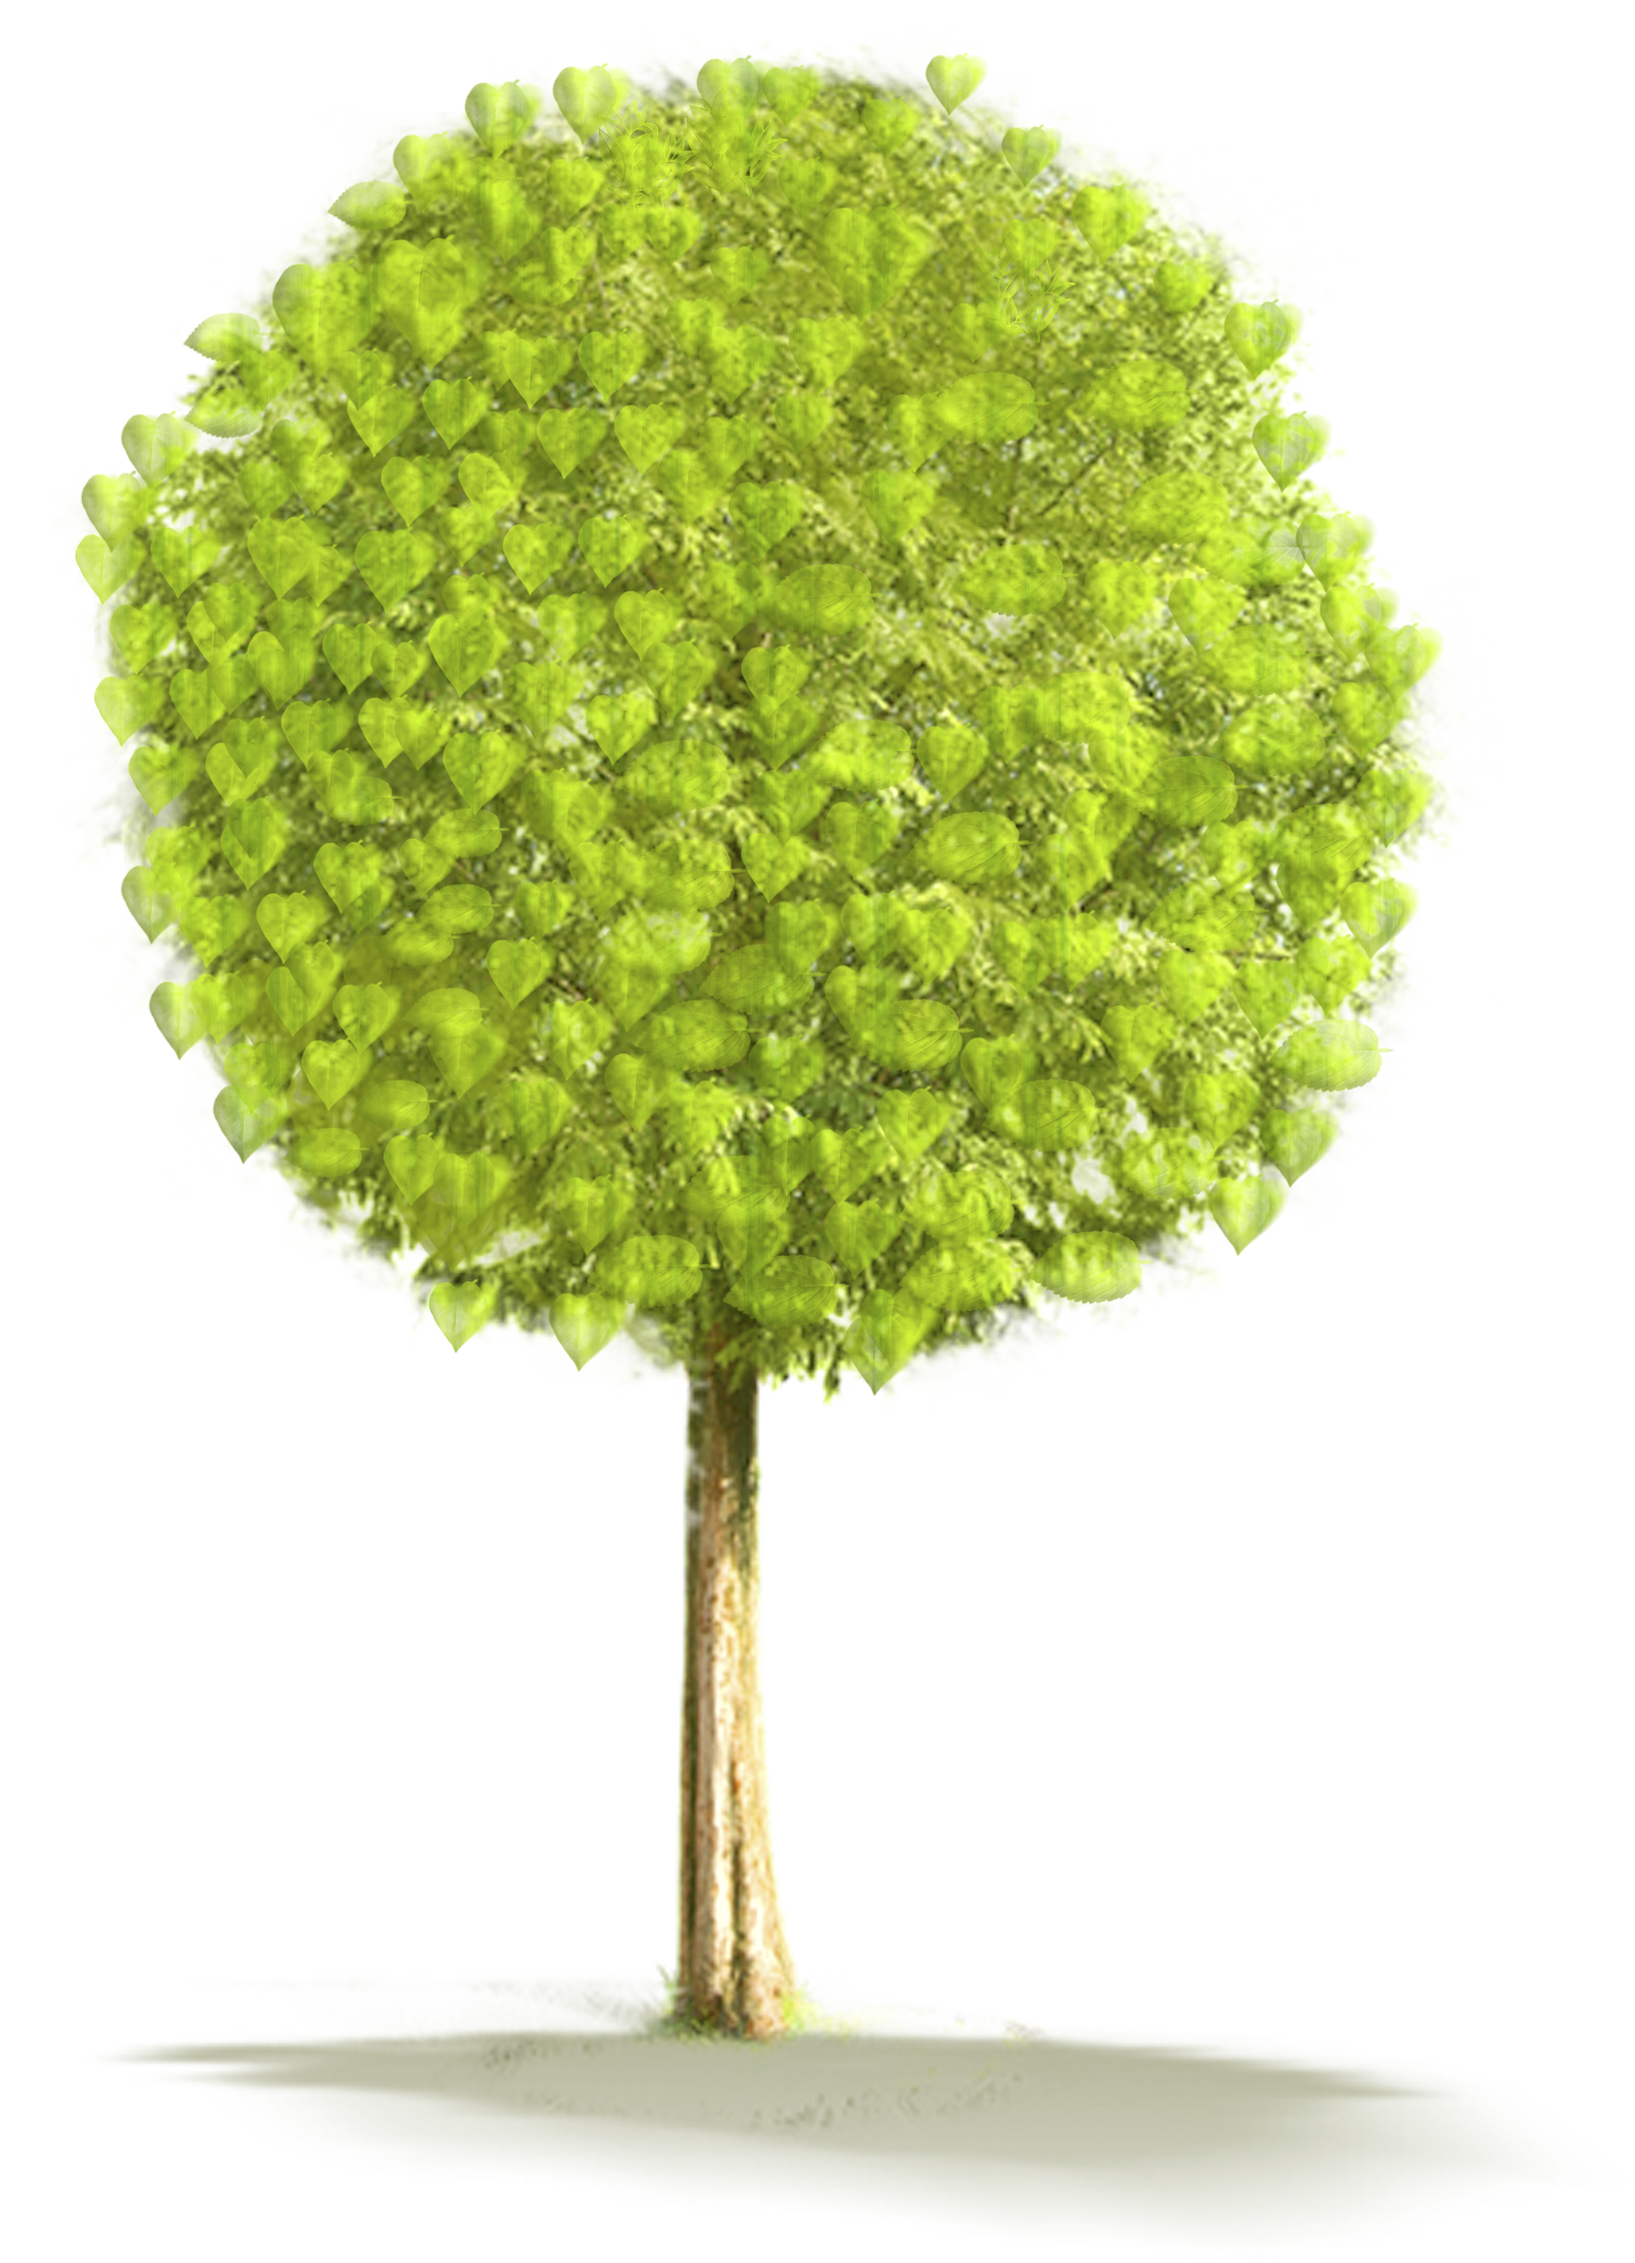 Grain clipart tree. Large png gallery yopriceville